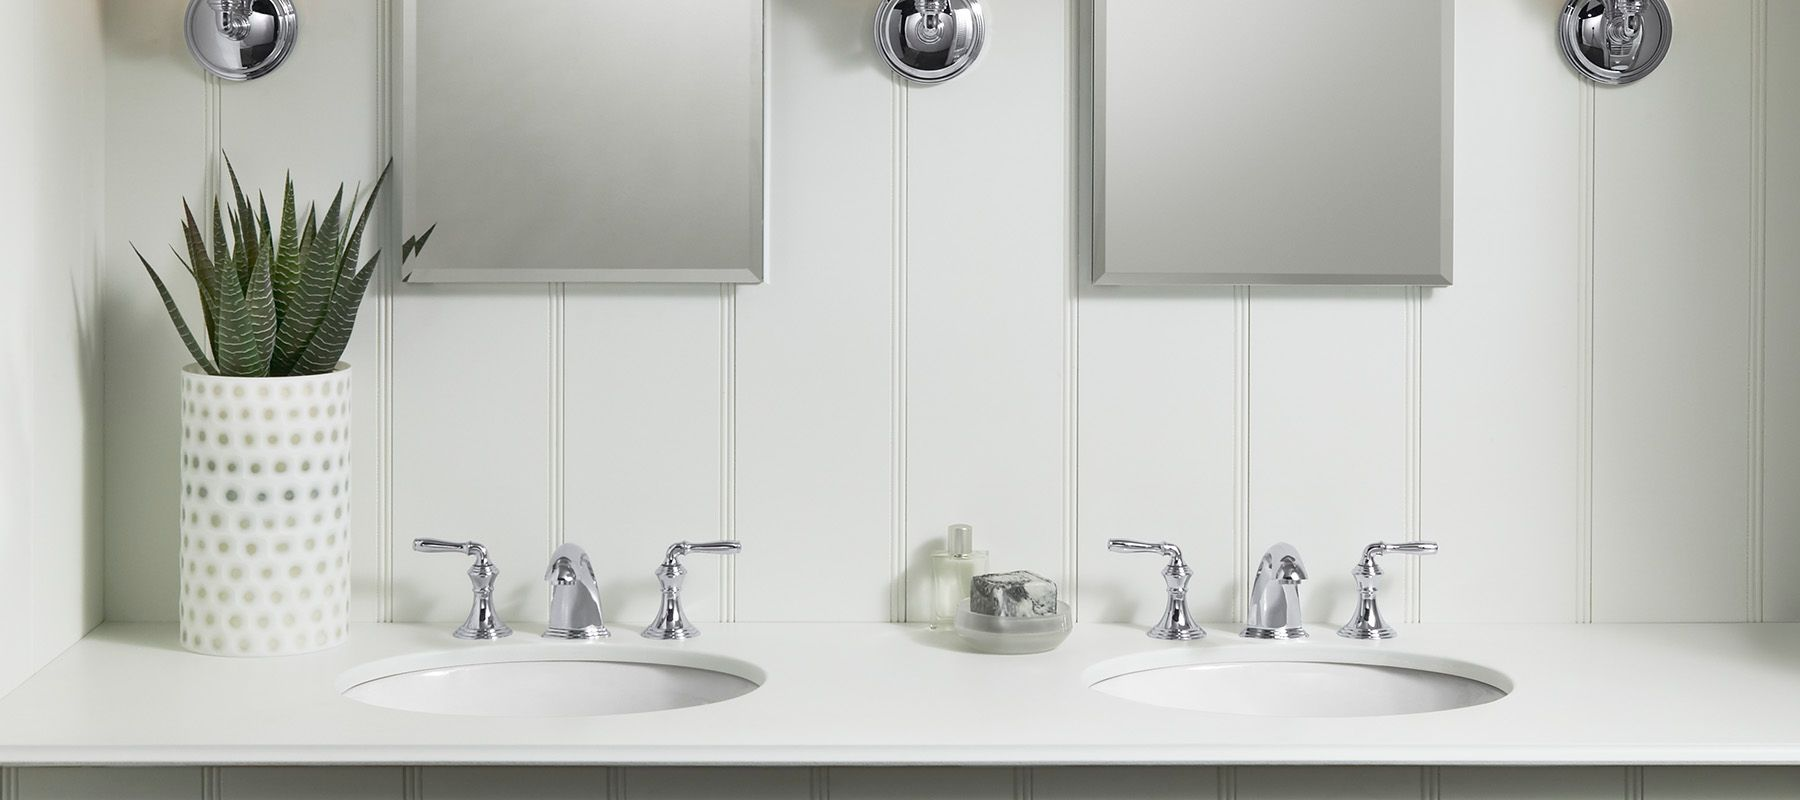 Kitchen Faucets Wholesale Bathroom Sinks Bathroom Kohler